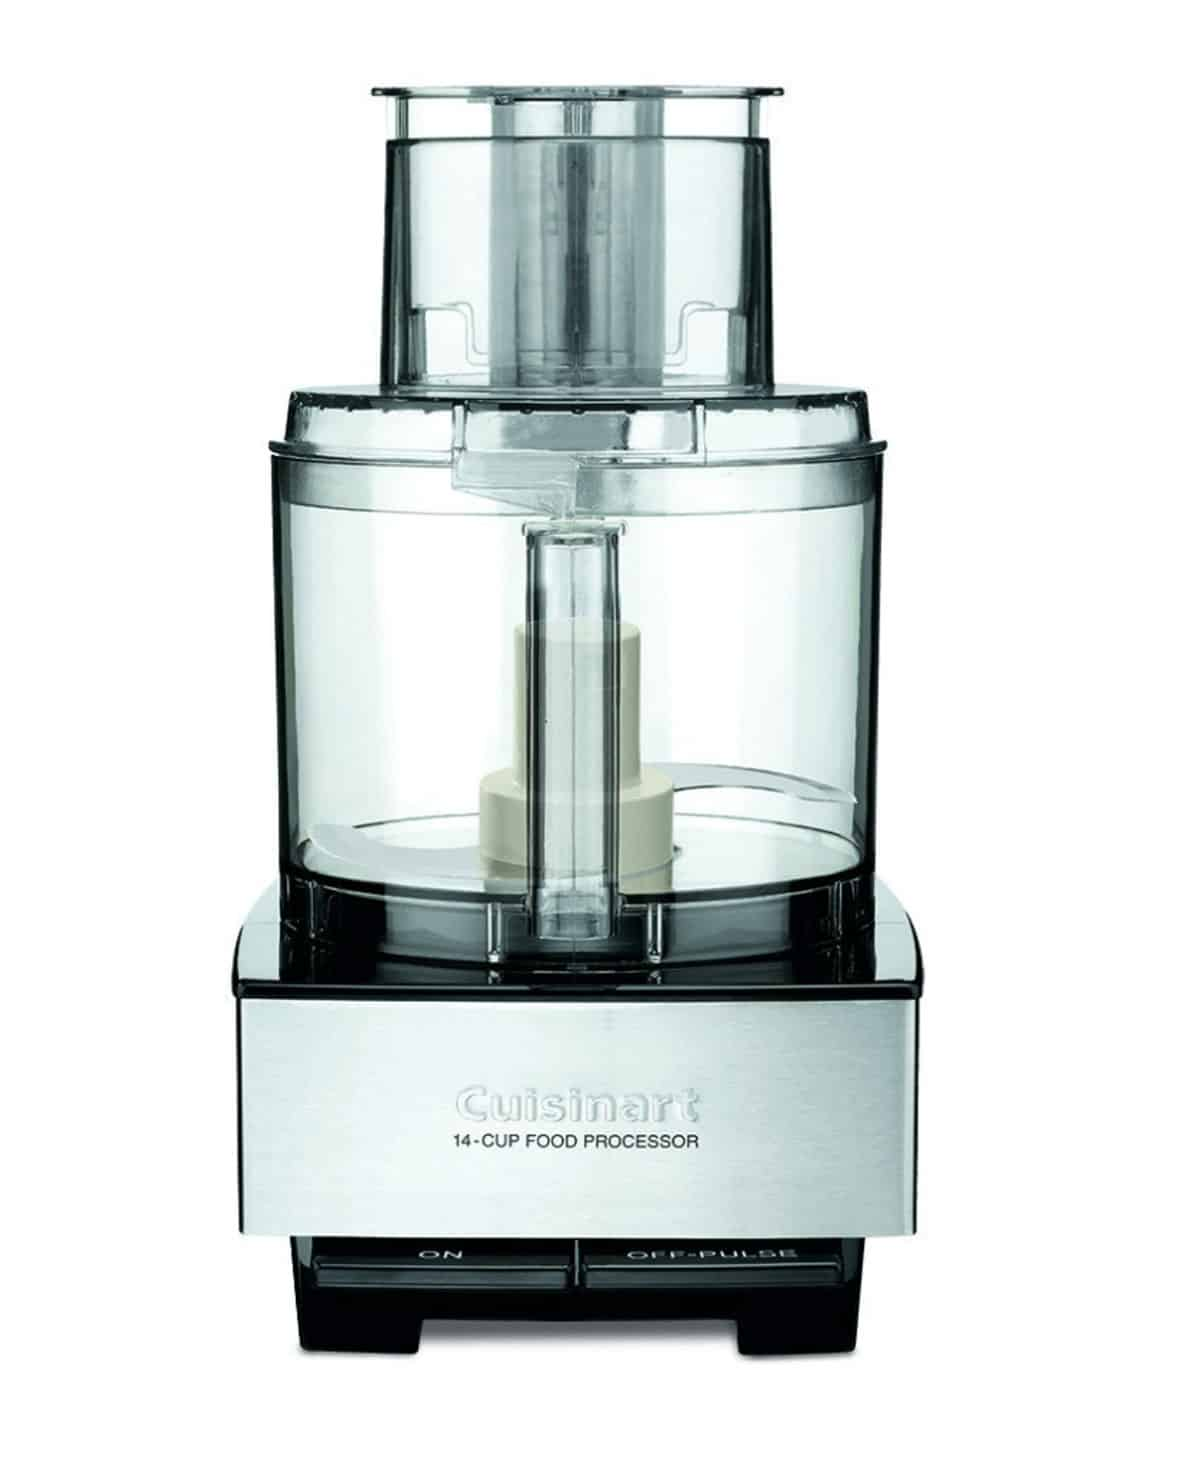 Cuisinart Food Processor.